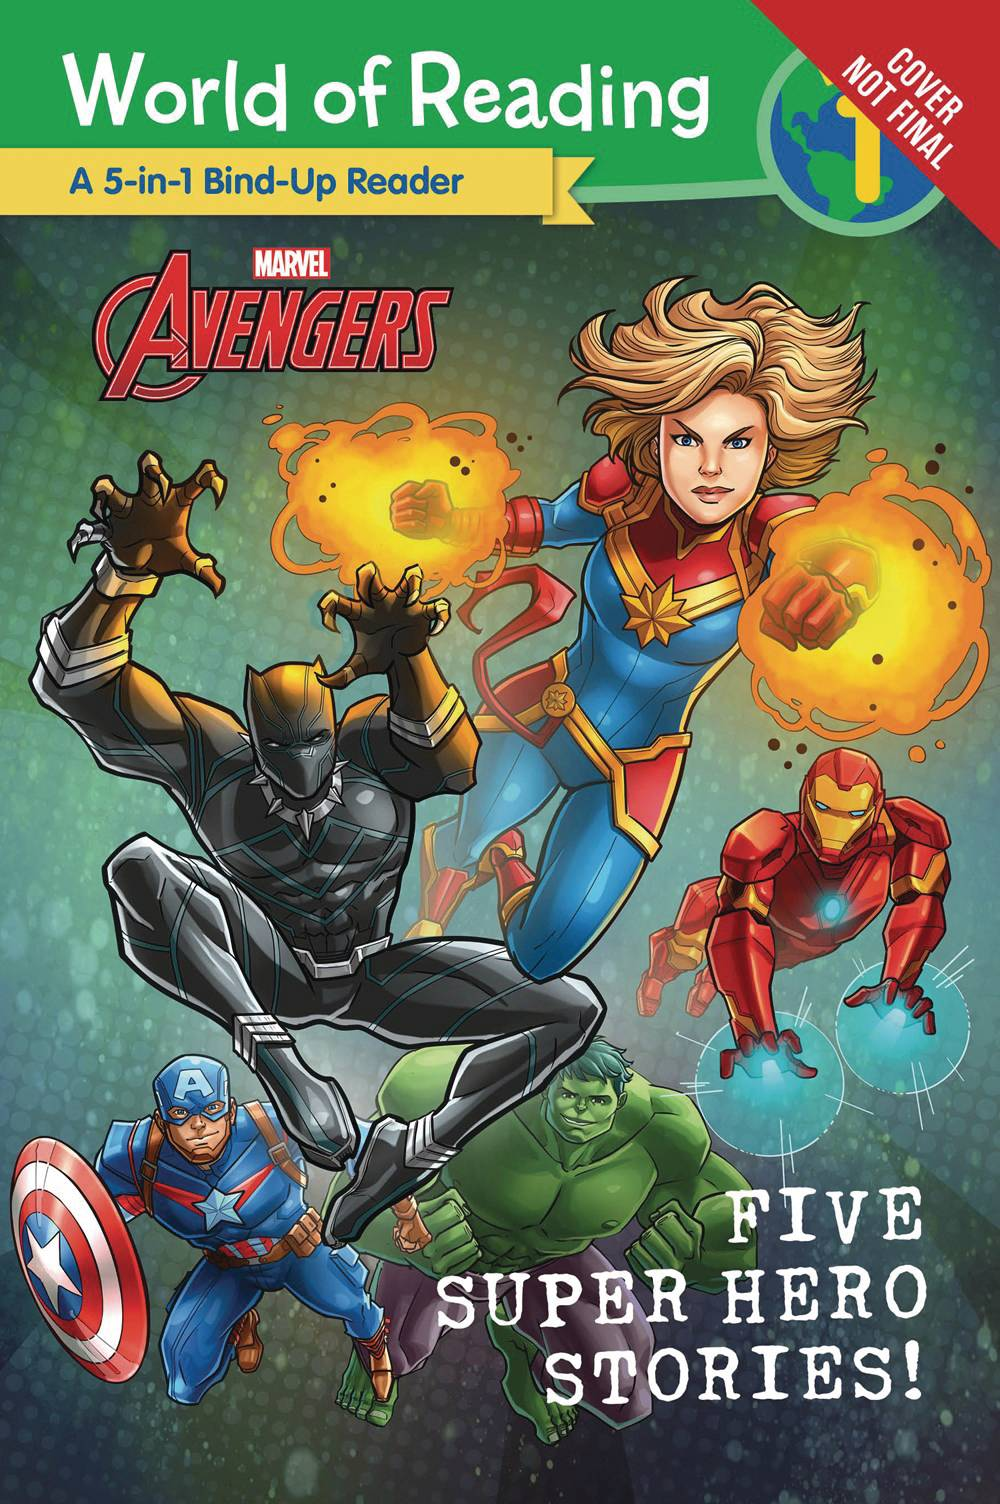 MARVEL FIVE SUPER HERO STORIES WORLD OF READING SC